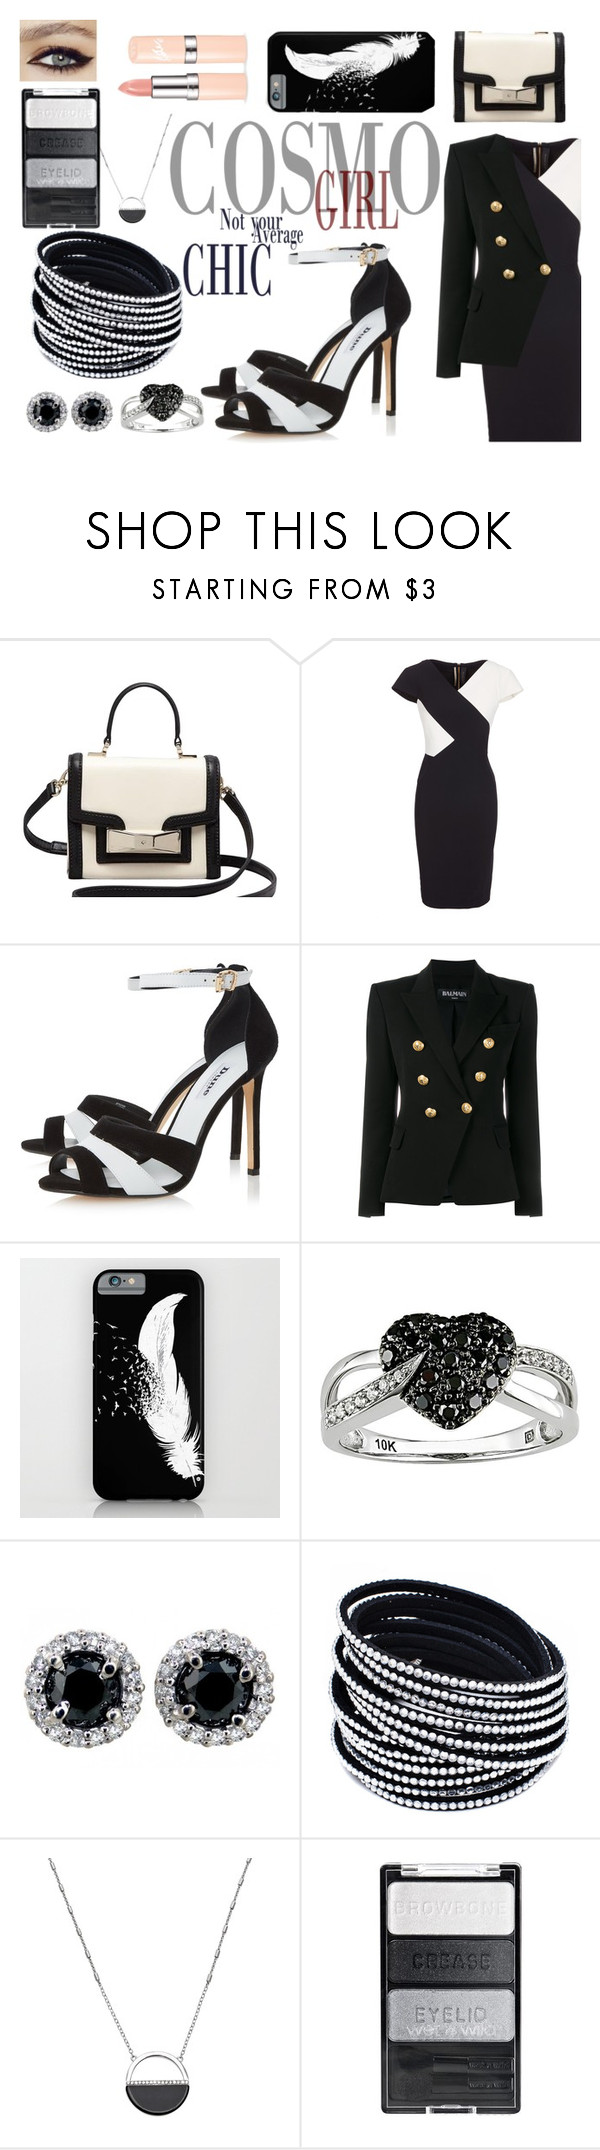 """""""Cosmo Girl"""" by emmy-124fashions ❤ liked on Polyvore featuring Kate Spade, Roland Mouret, Dune, Balmain, Ice, White House Black Market and blackandwhite"""